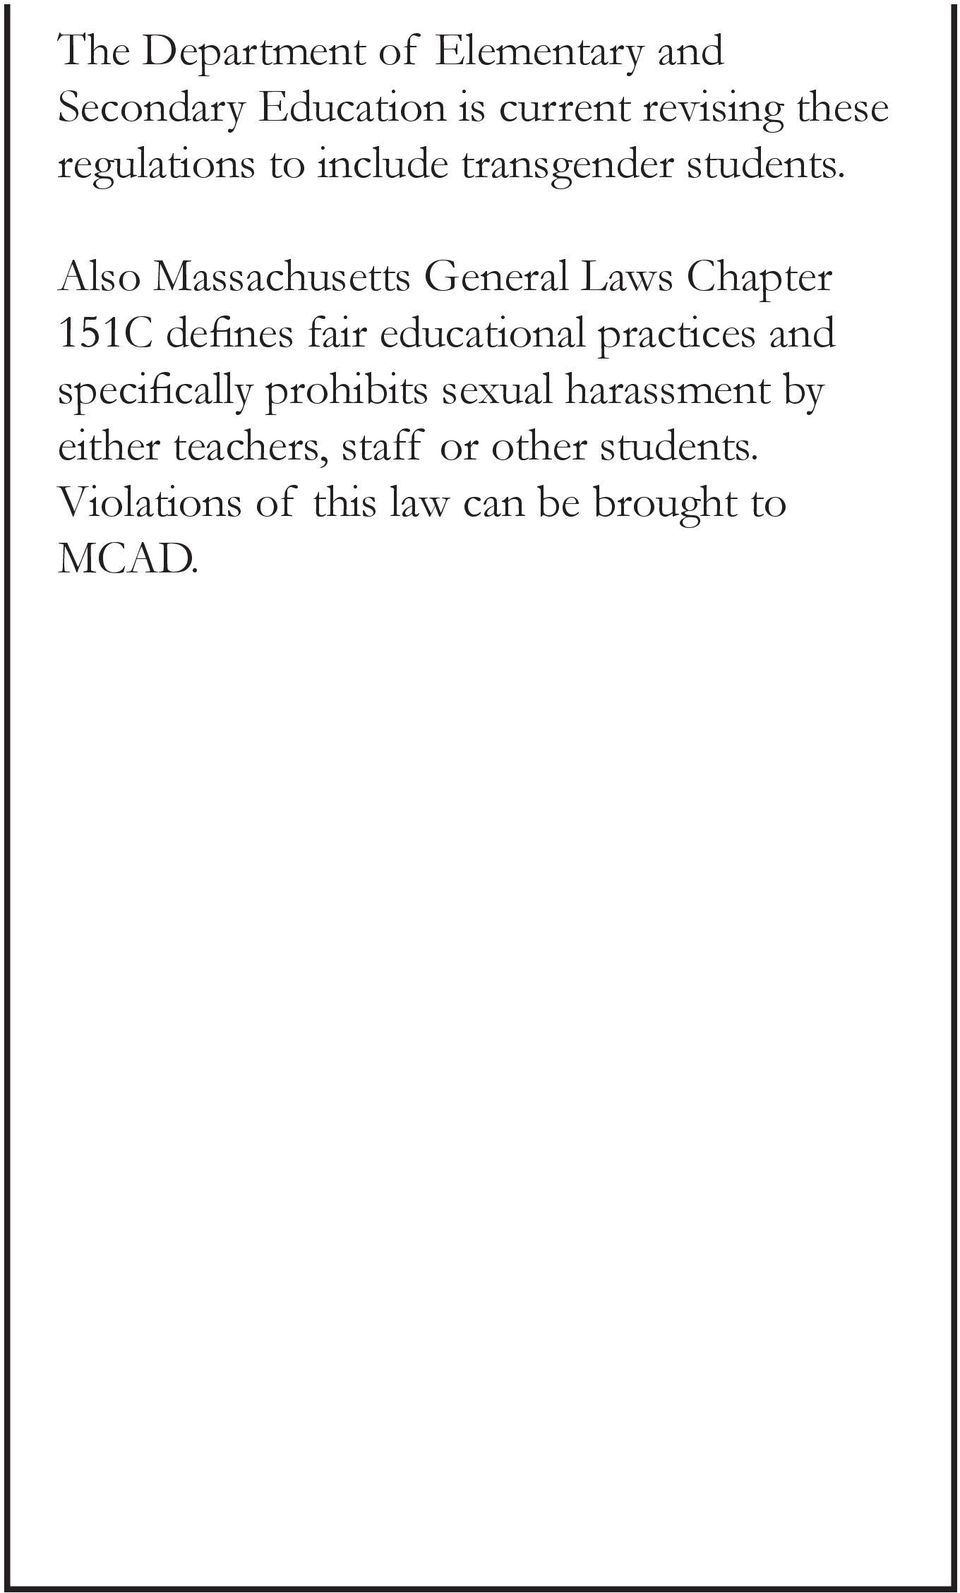 Also Massachusetts General Laws Chapter 151C defines fair educational practices and